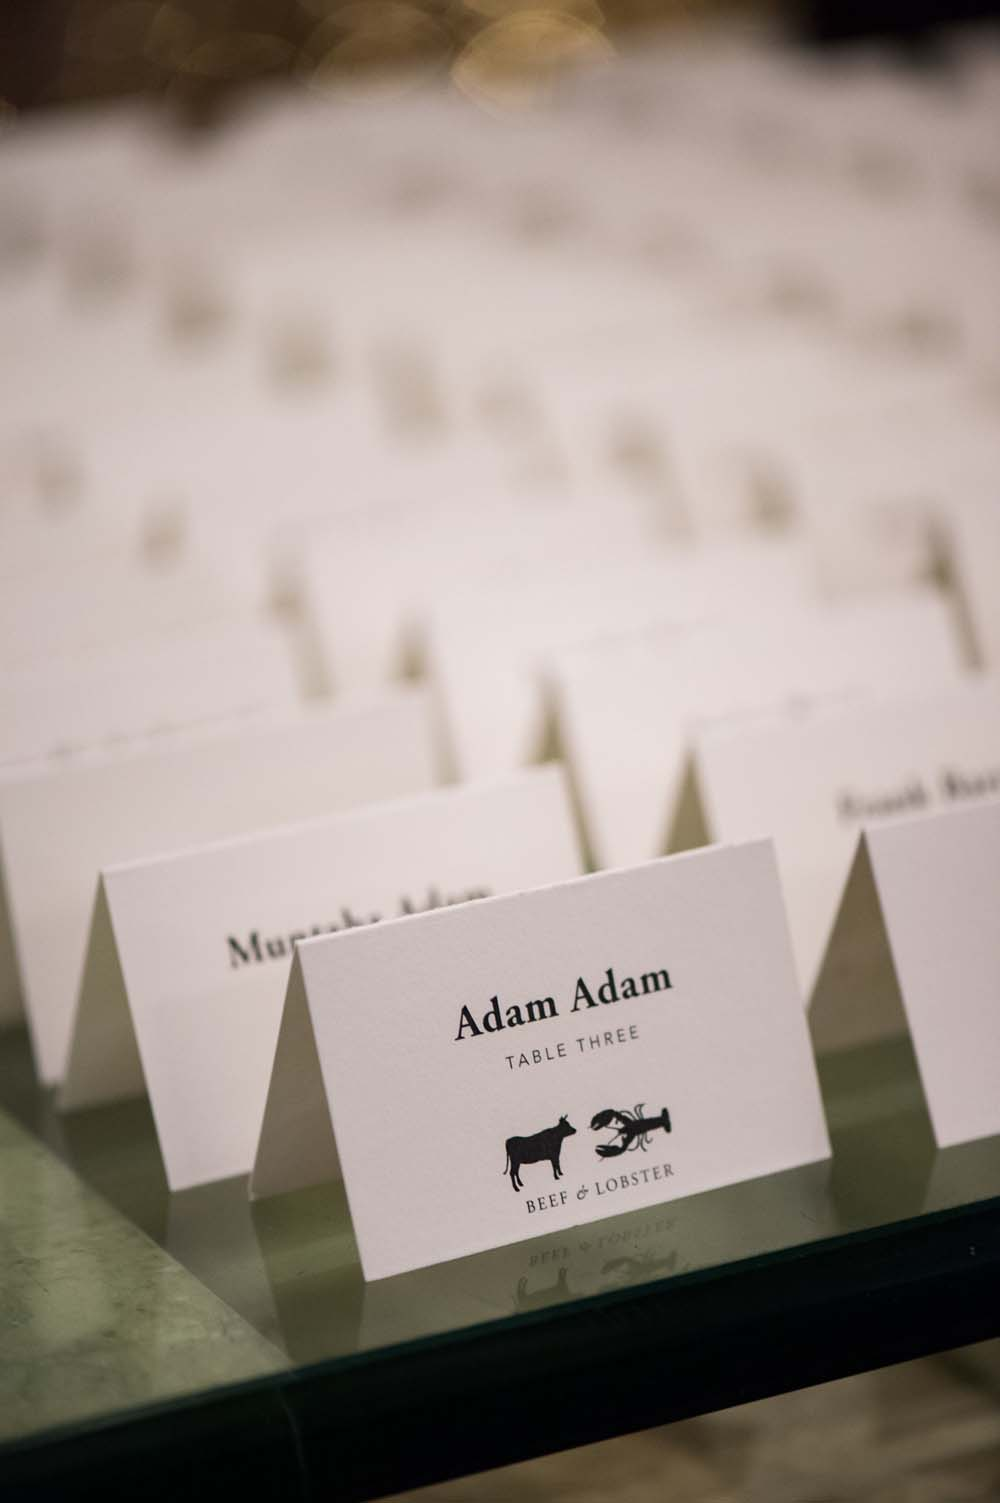 A Classic Vintage inspired Wedding at the One King West in Toronto - Place Cards